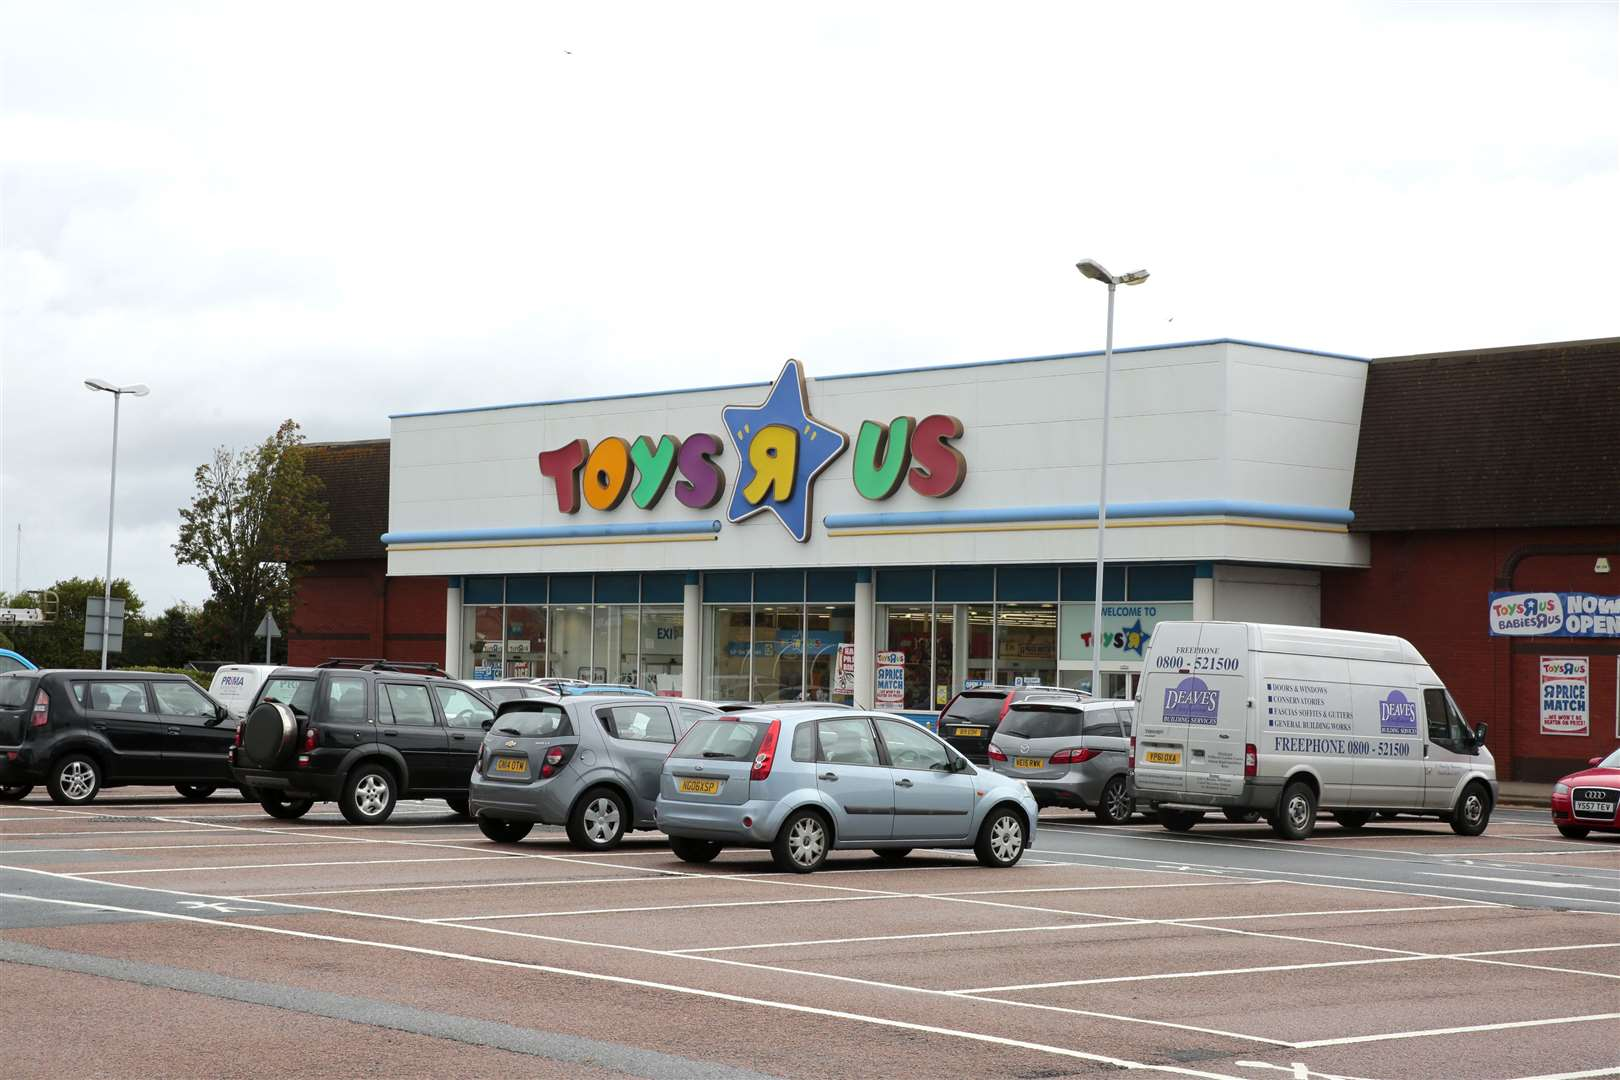 The former Toys R Us store, in Horsted Retail Park, Maidstone Road, Chatham